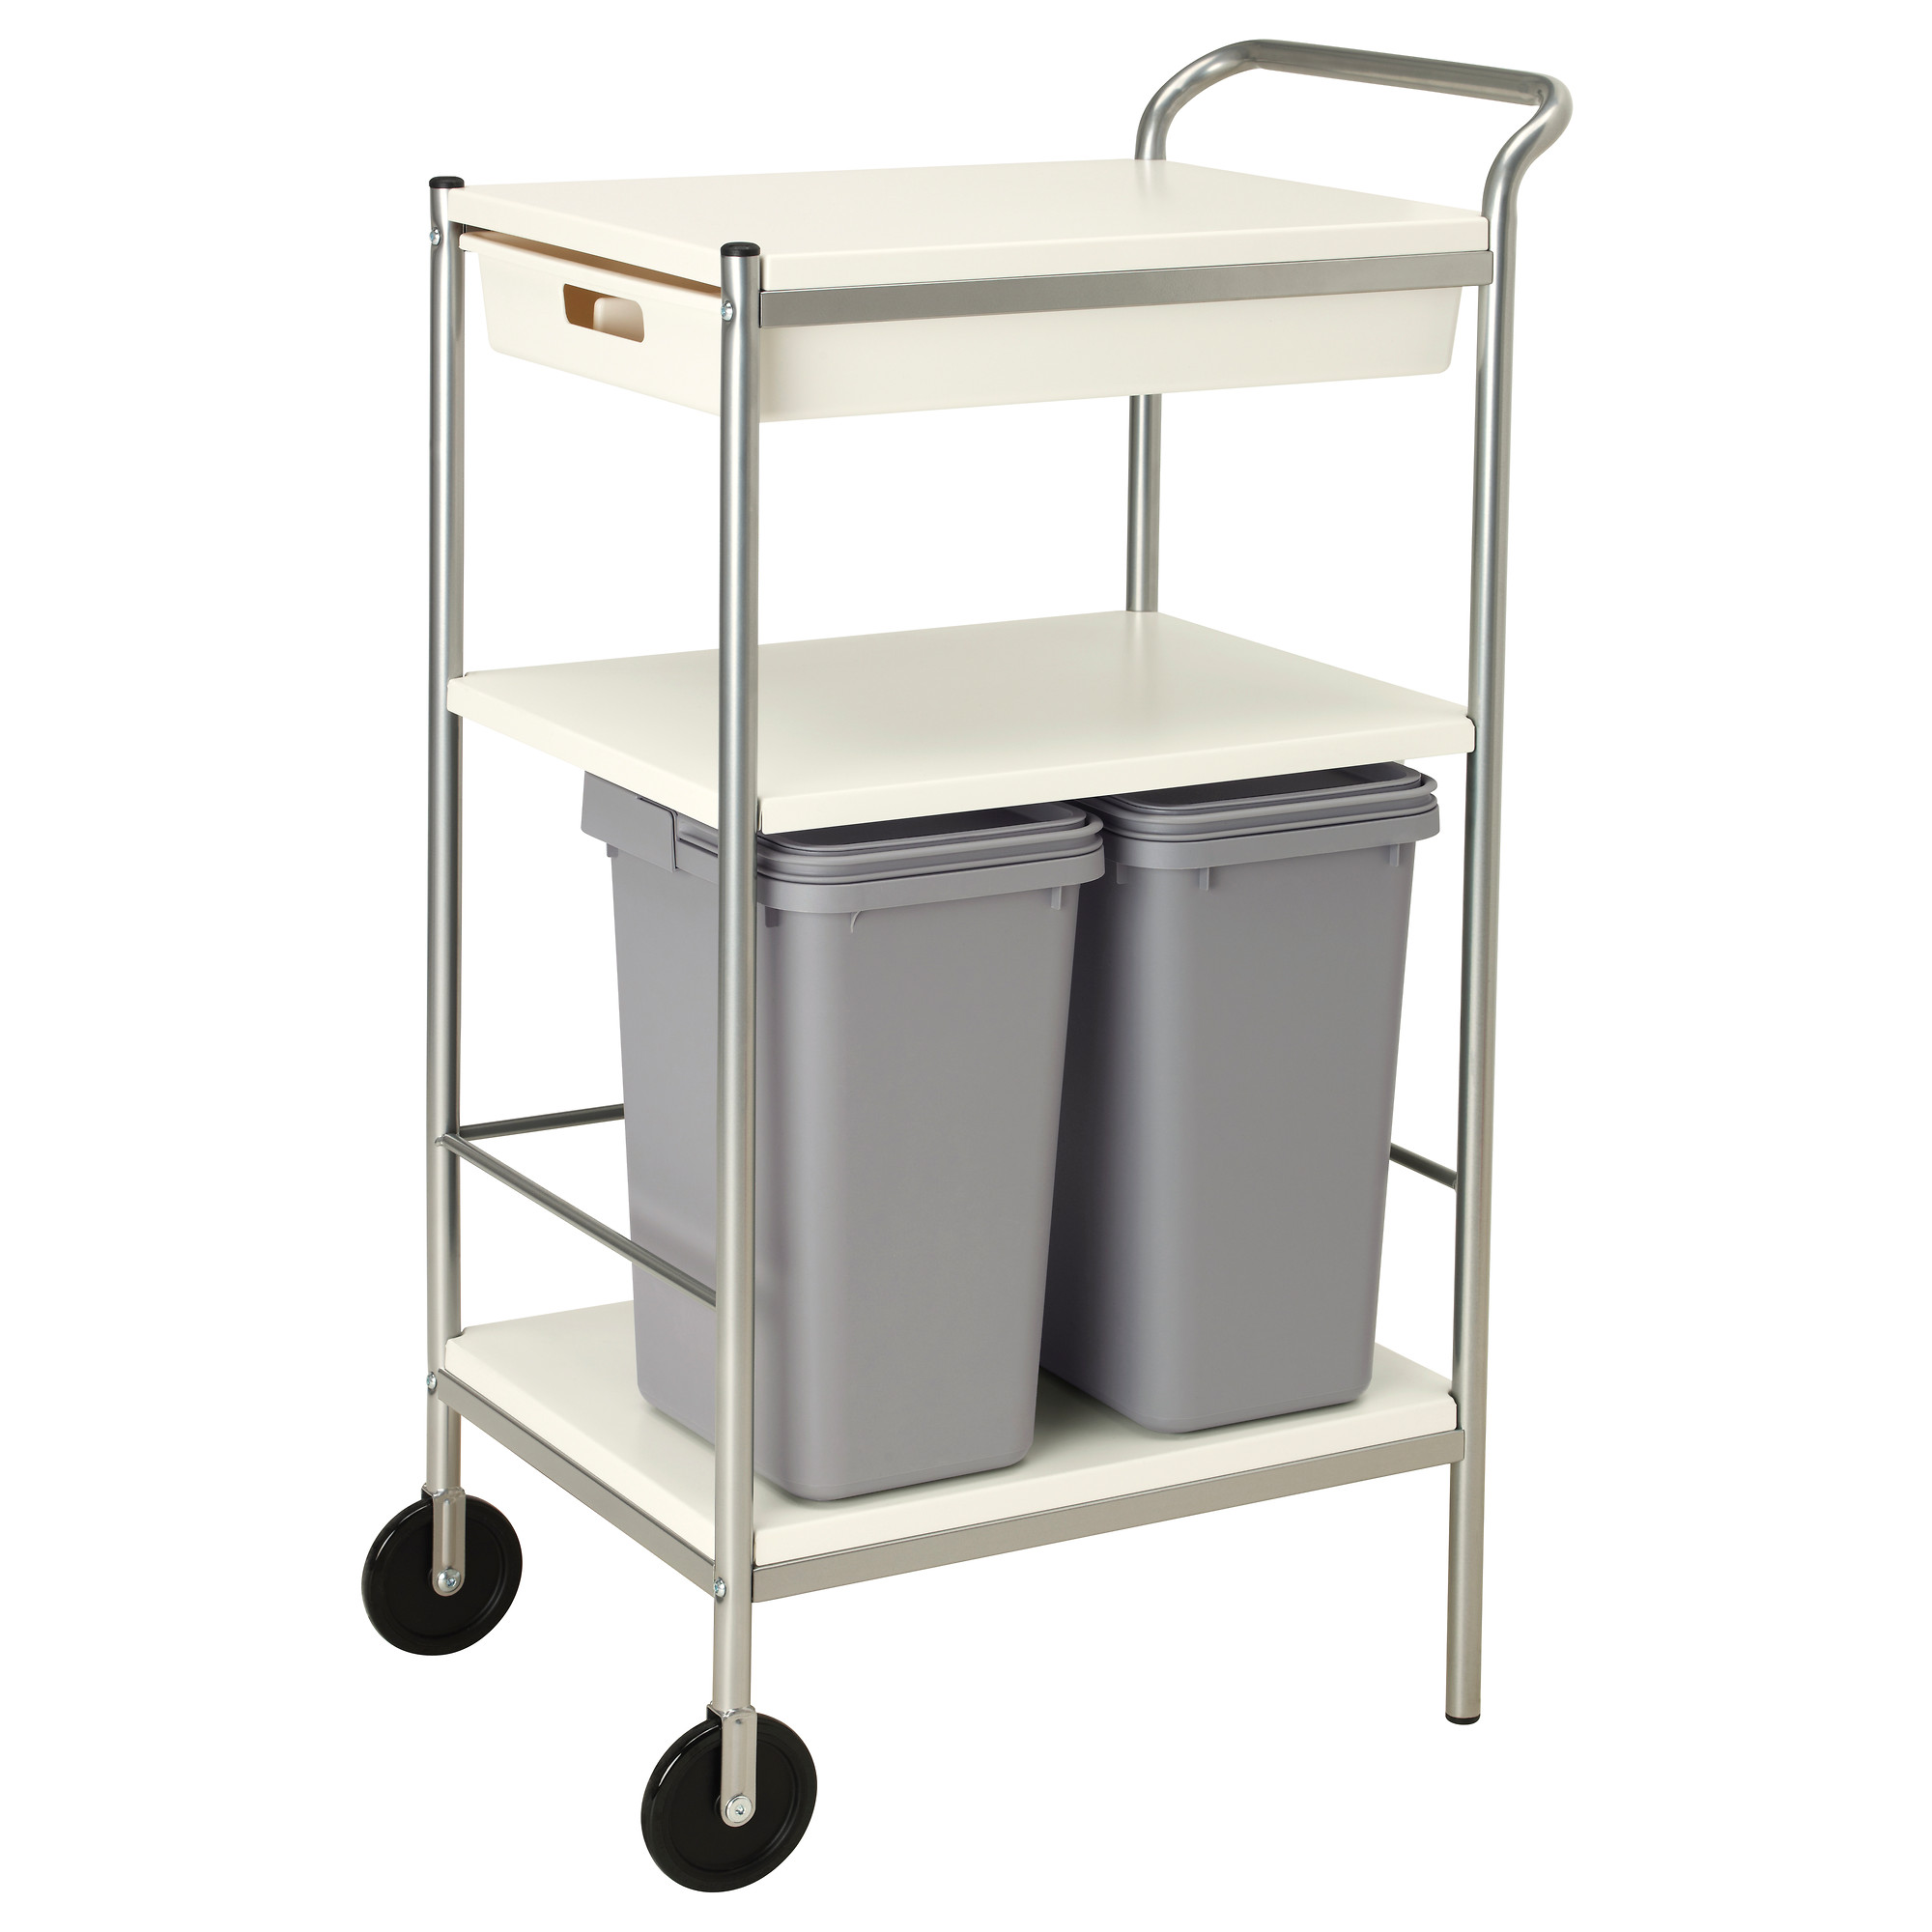 Ikea bygel kitchen utility cart island organizer for Kitchen utility cart